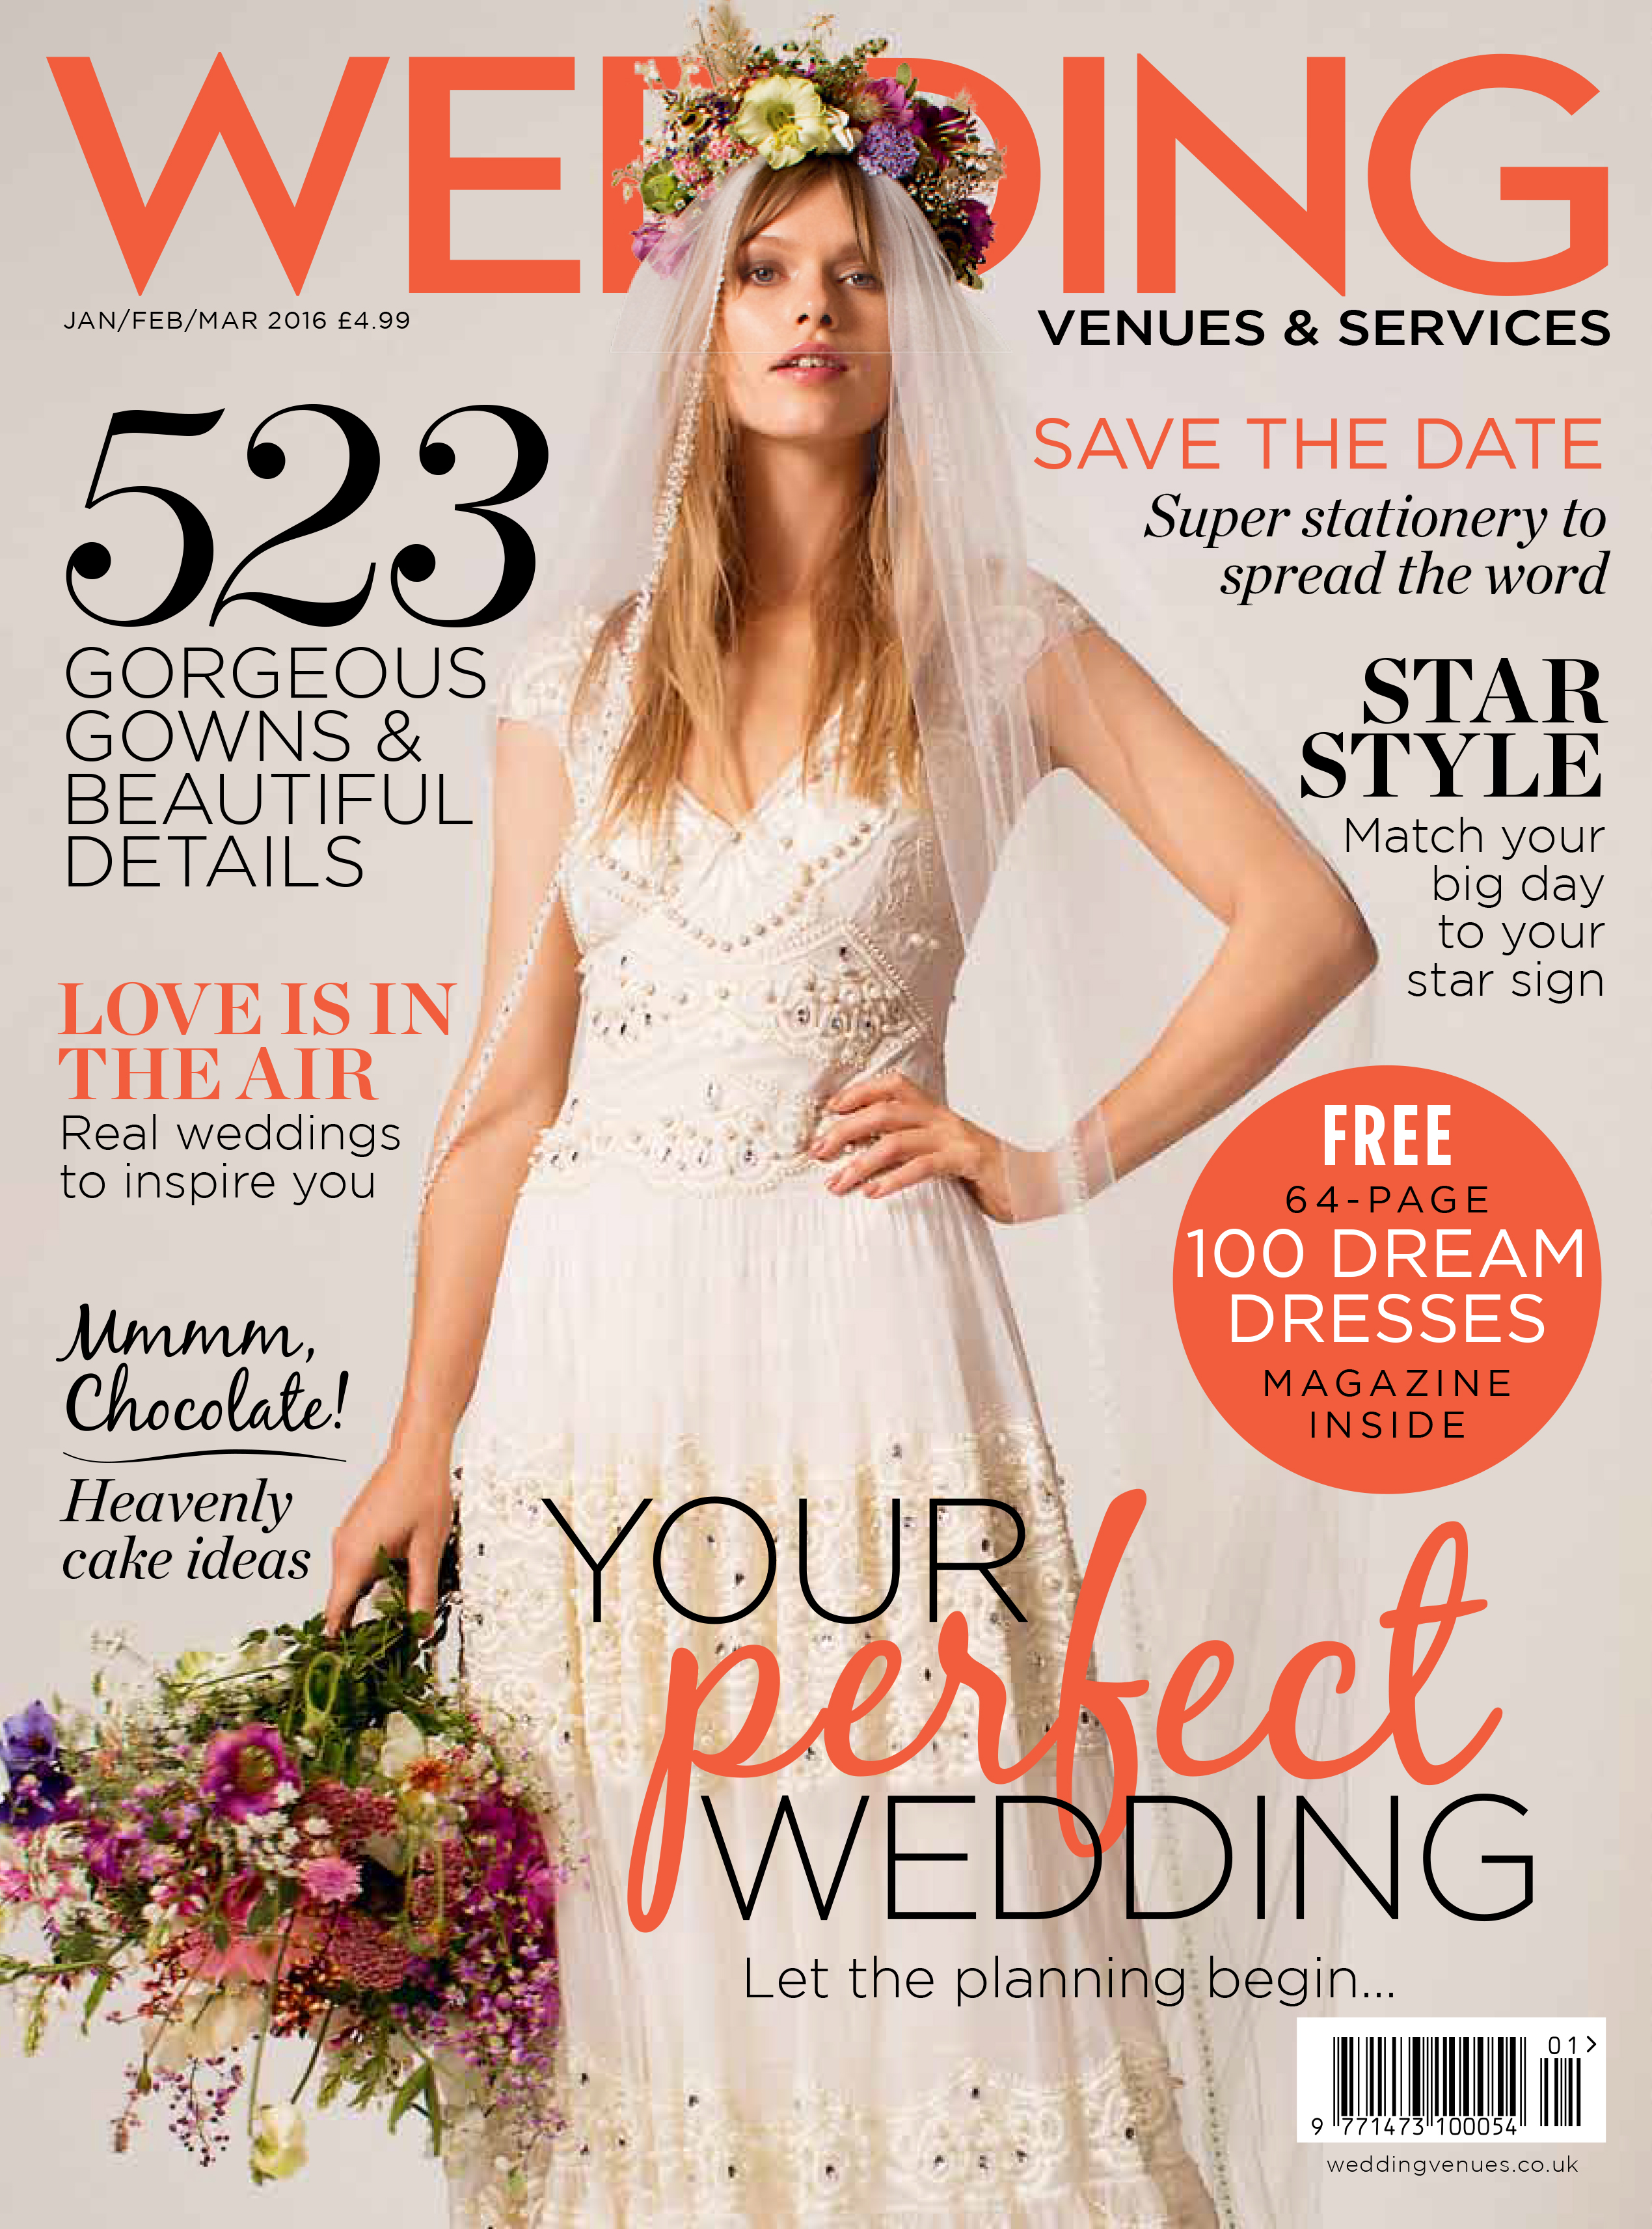 Wedding Venues cover designer wedding dresses by Caroline Castigliano